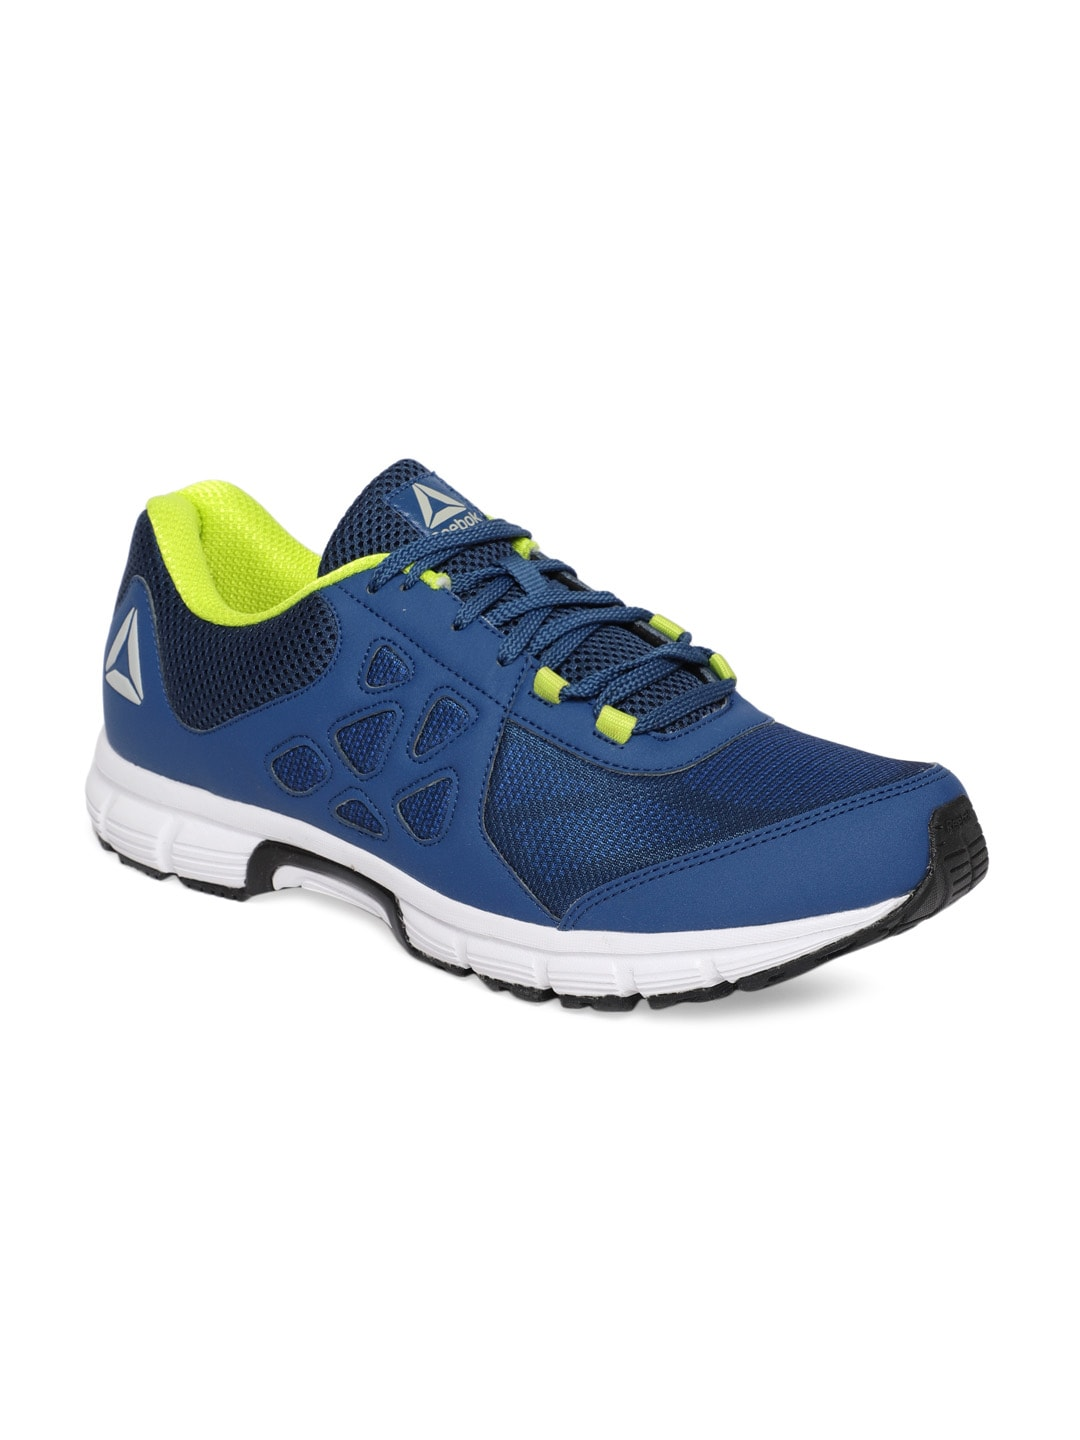 Sports Shoes - Buy Sport Shoes For Men   Women Online  ce26b48c6